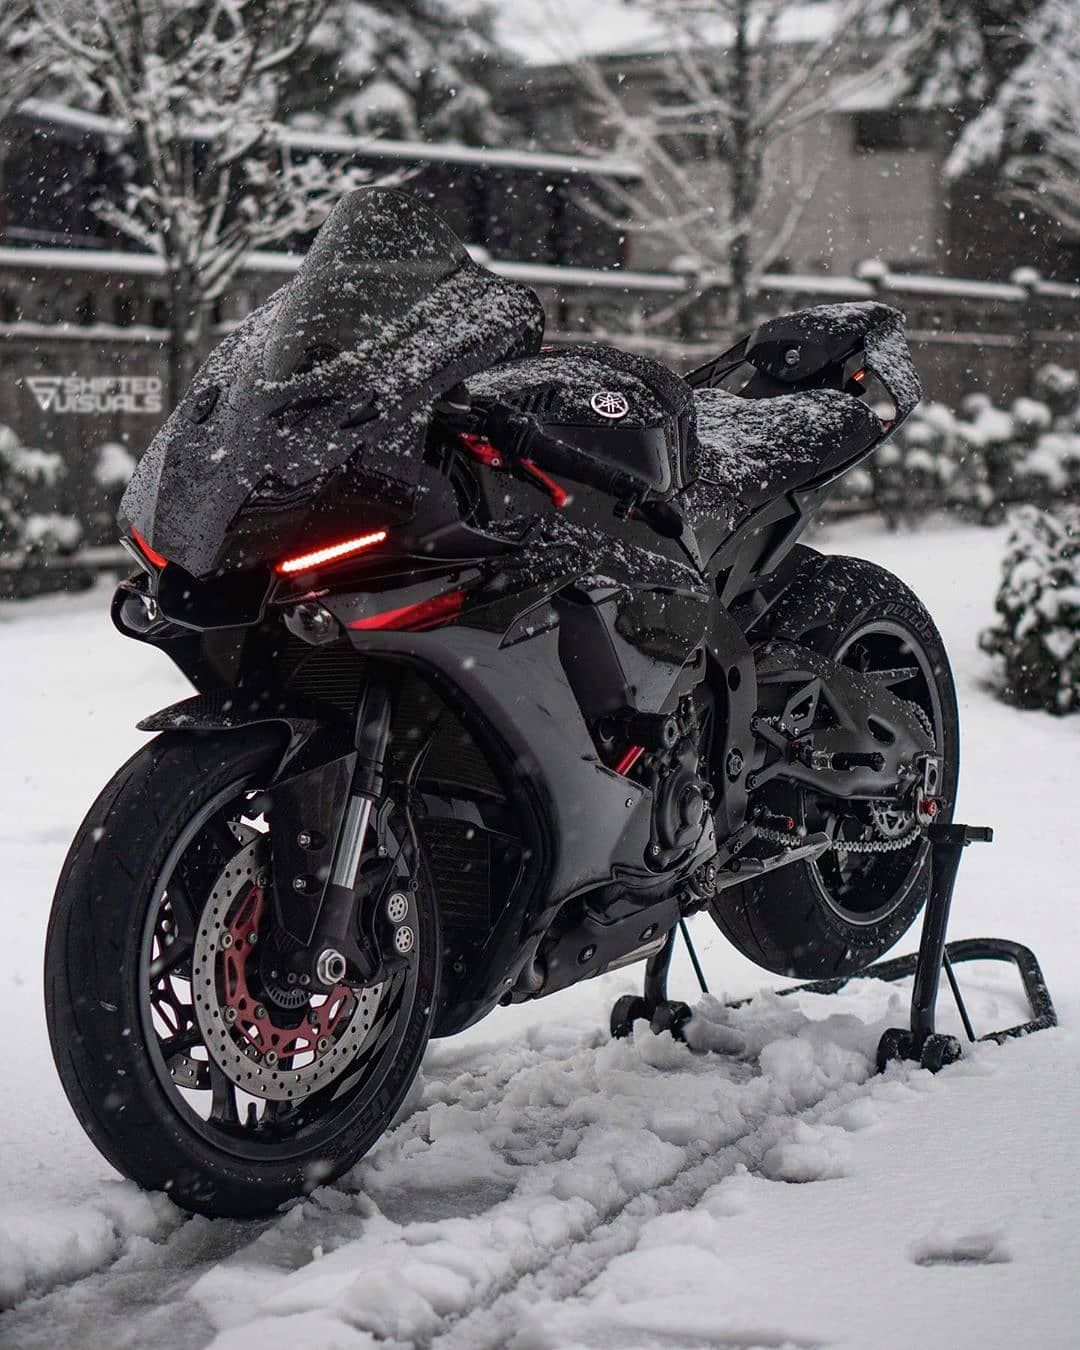 Bikelife On Instagram Beast Black R1 Yay Or Nay Bike